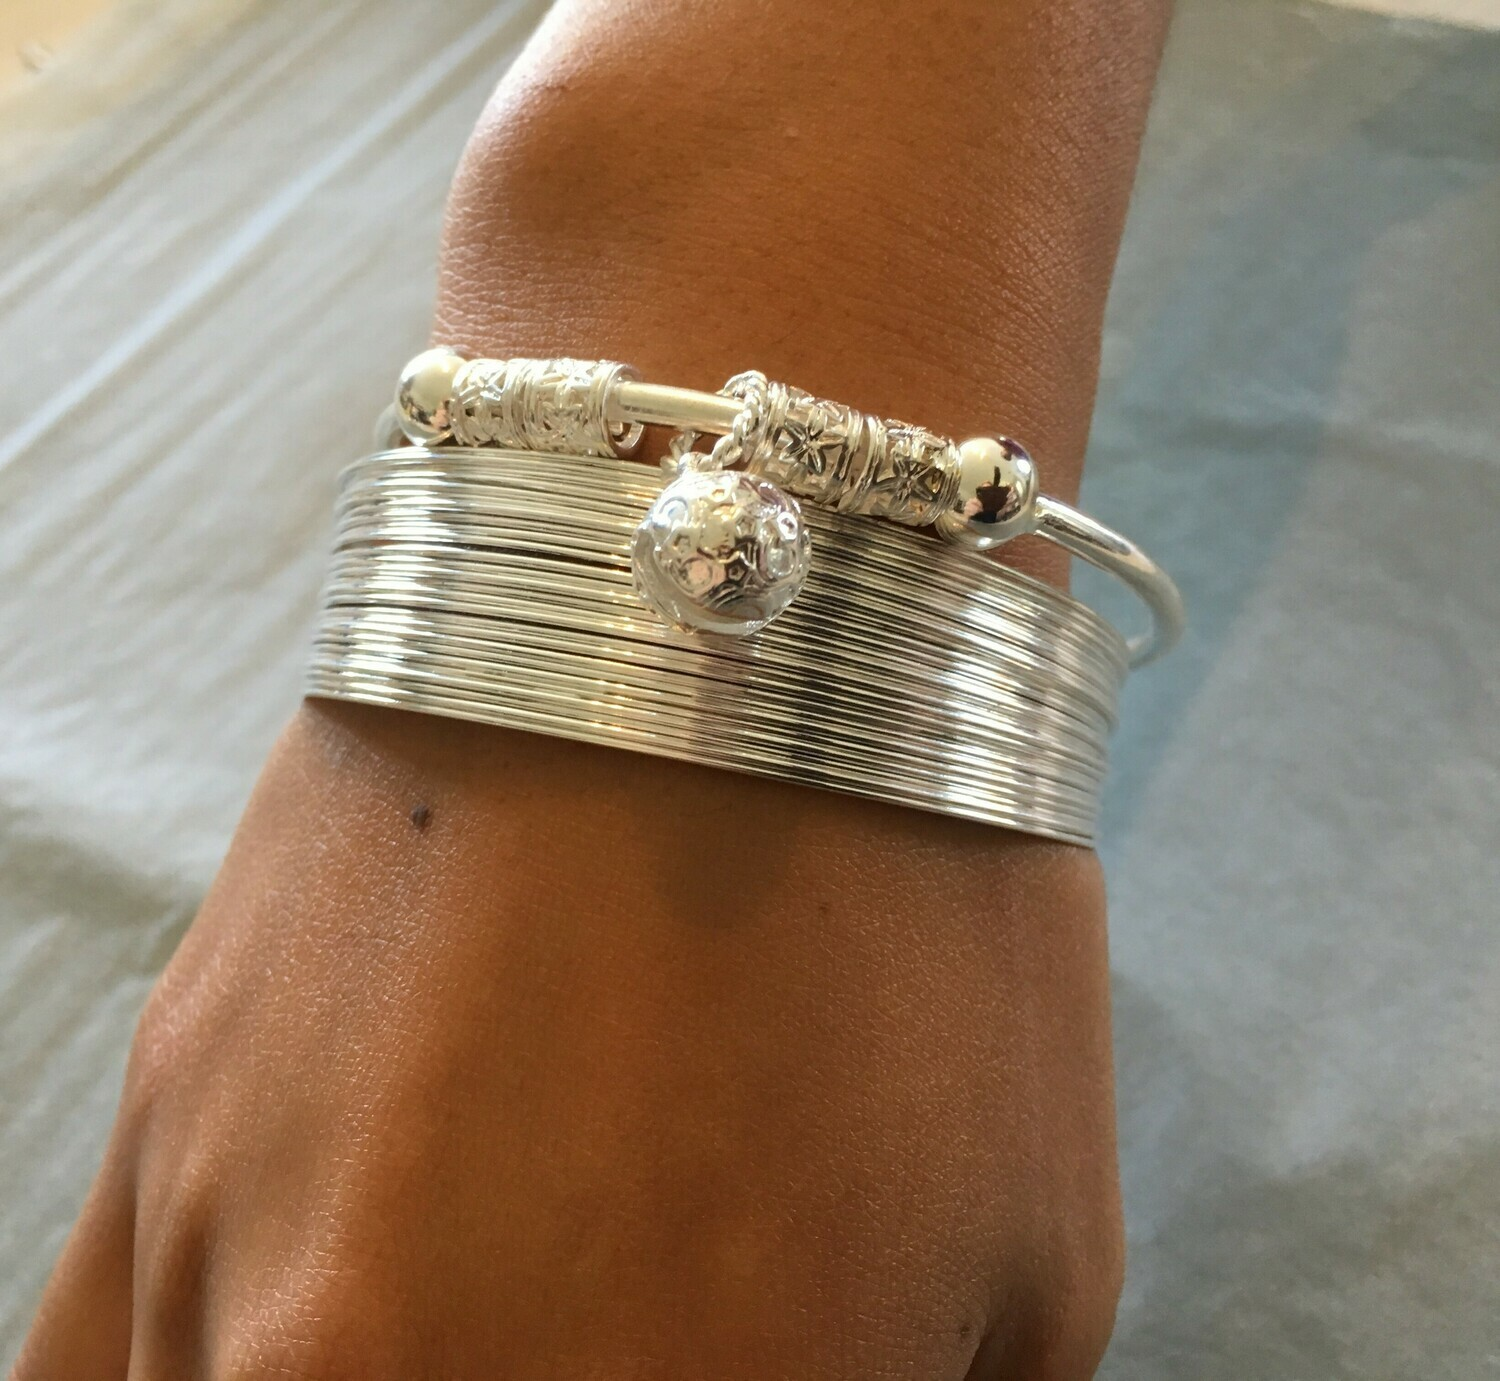 WAS $64.90 - 57% OFF - Gorgeous 2 Piece Set of Sterling Silver Bangle & Sterling Silver woven cuff